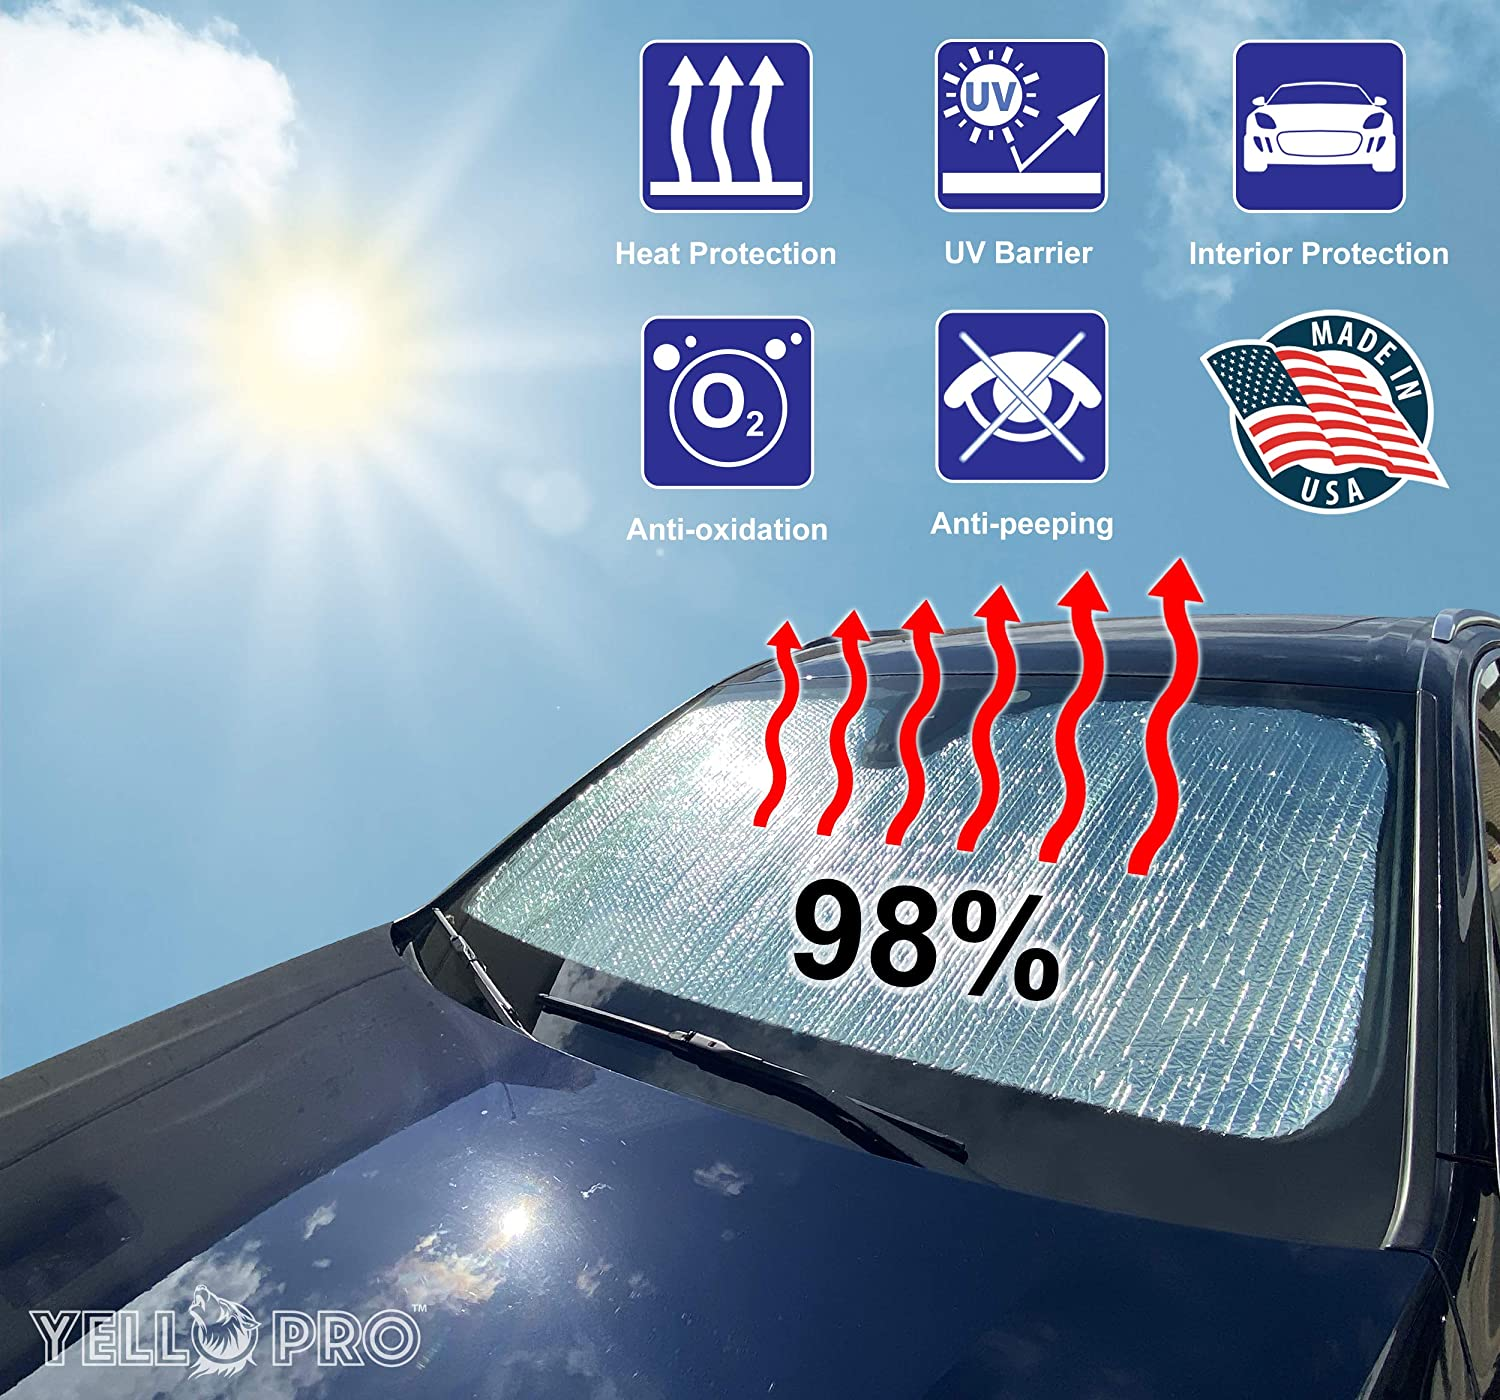 Made in USA Sun Shade Accessories YelloPro Auto Custom Fit Car Front Windshield Reflective Sunshade Protector for 2020 2021 Toyota Highlander L LE XLE Limited Platinum SUV